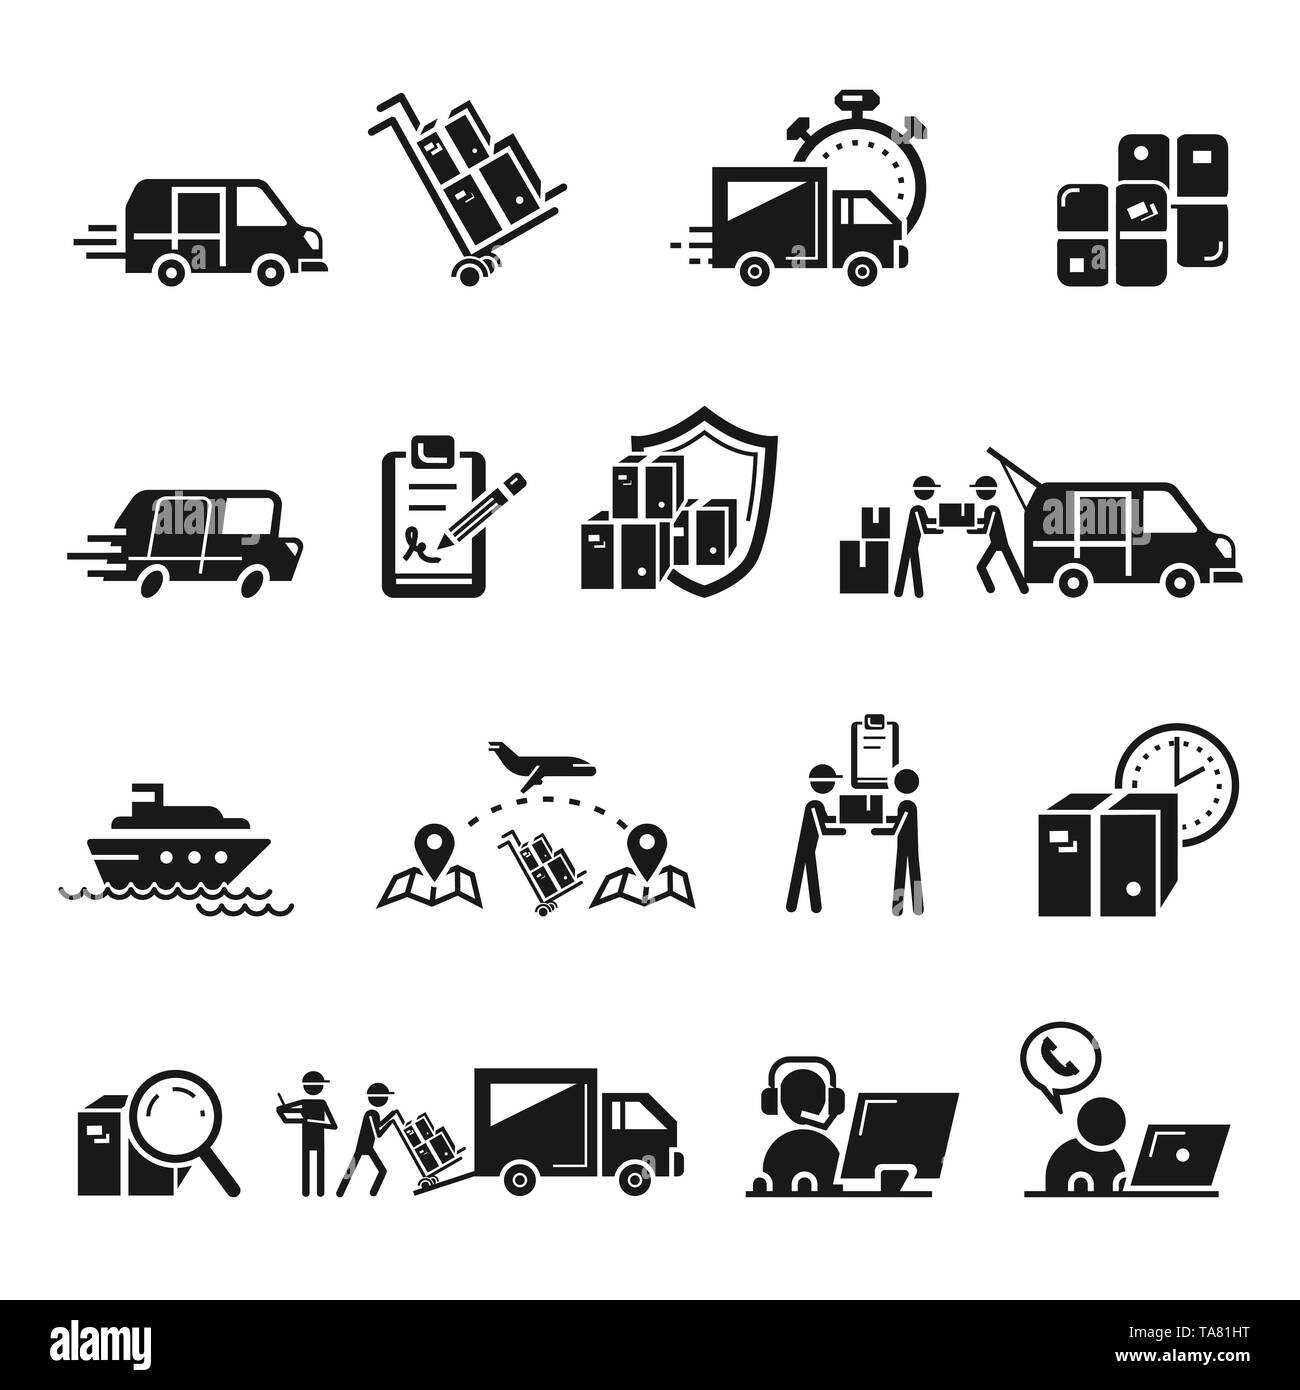 Parcel delivery icons set. Simple set of parcel delivery vector icons for web design on white background - Stock Image